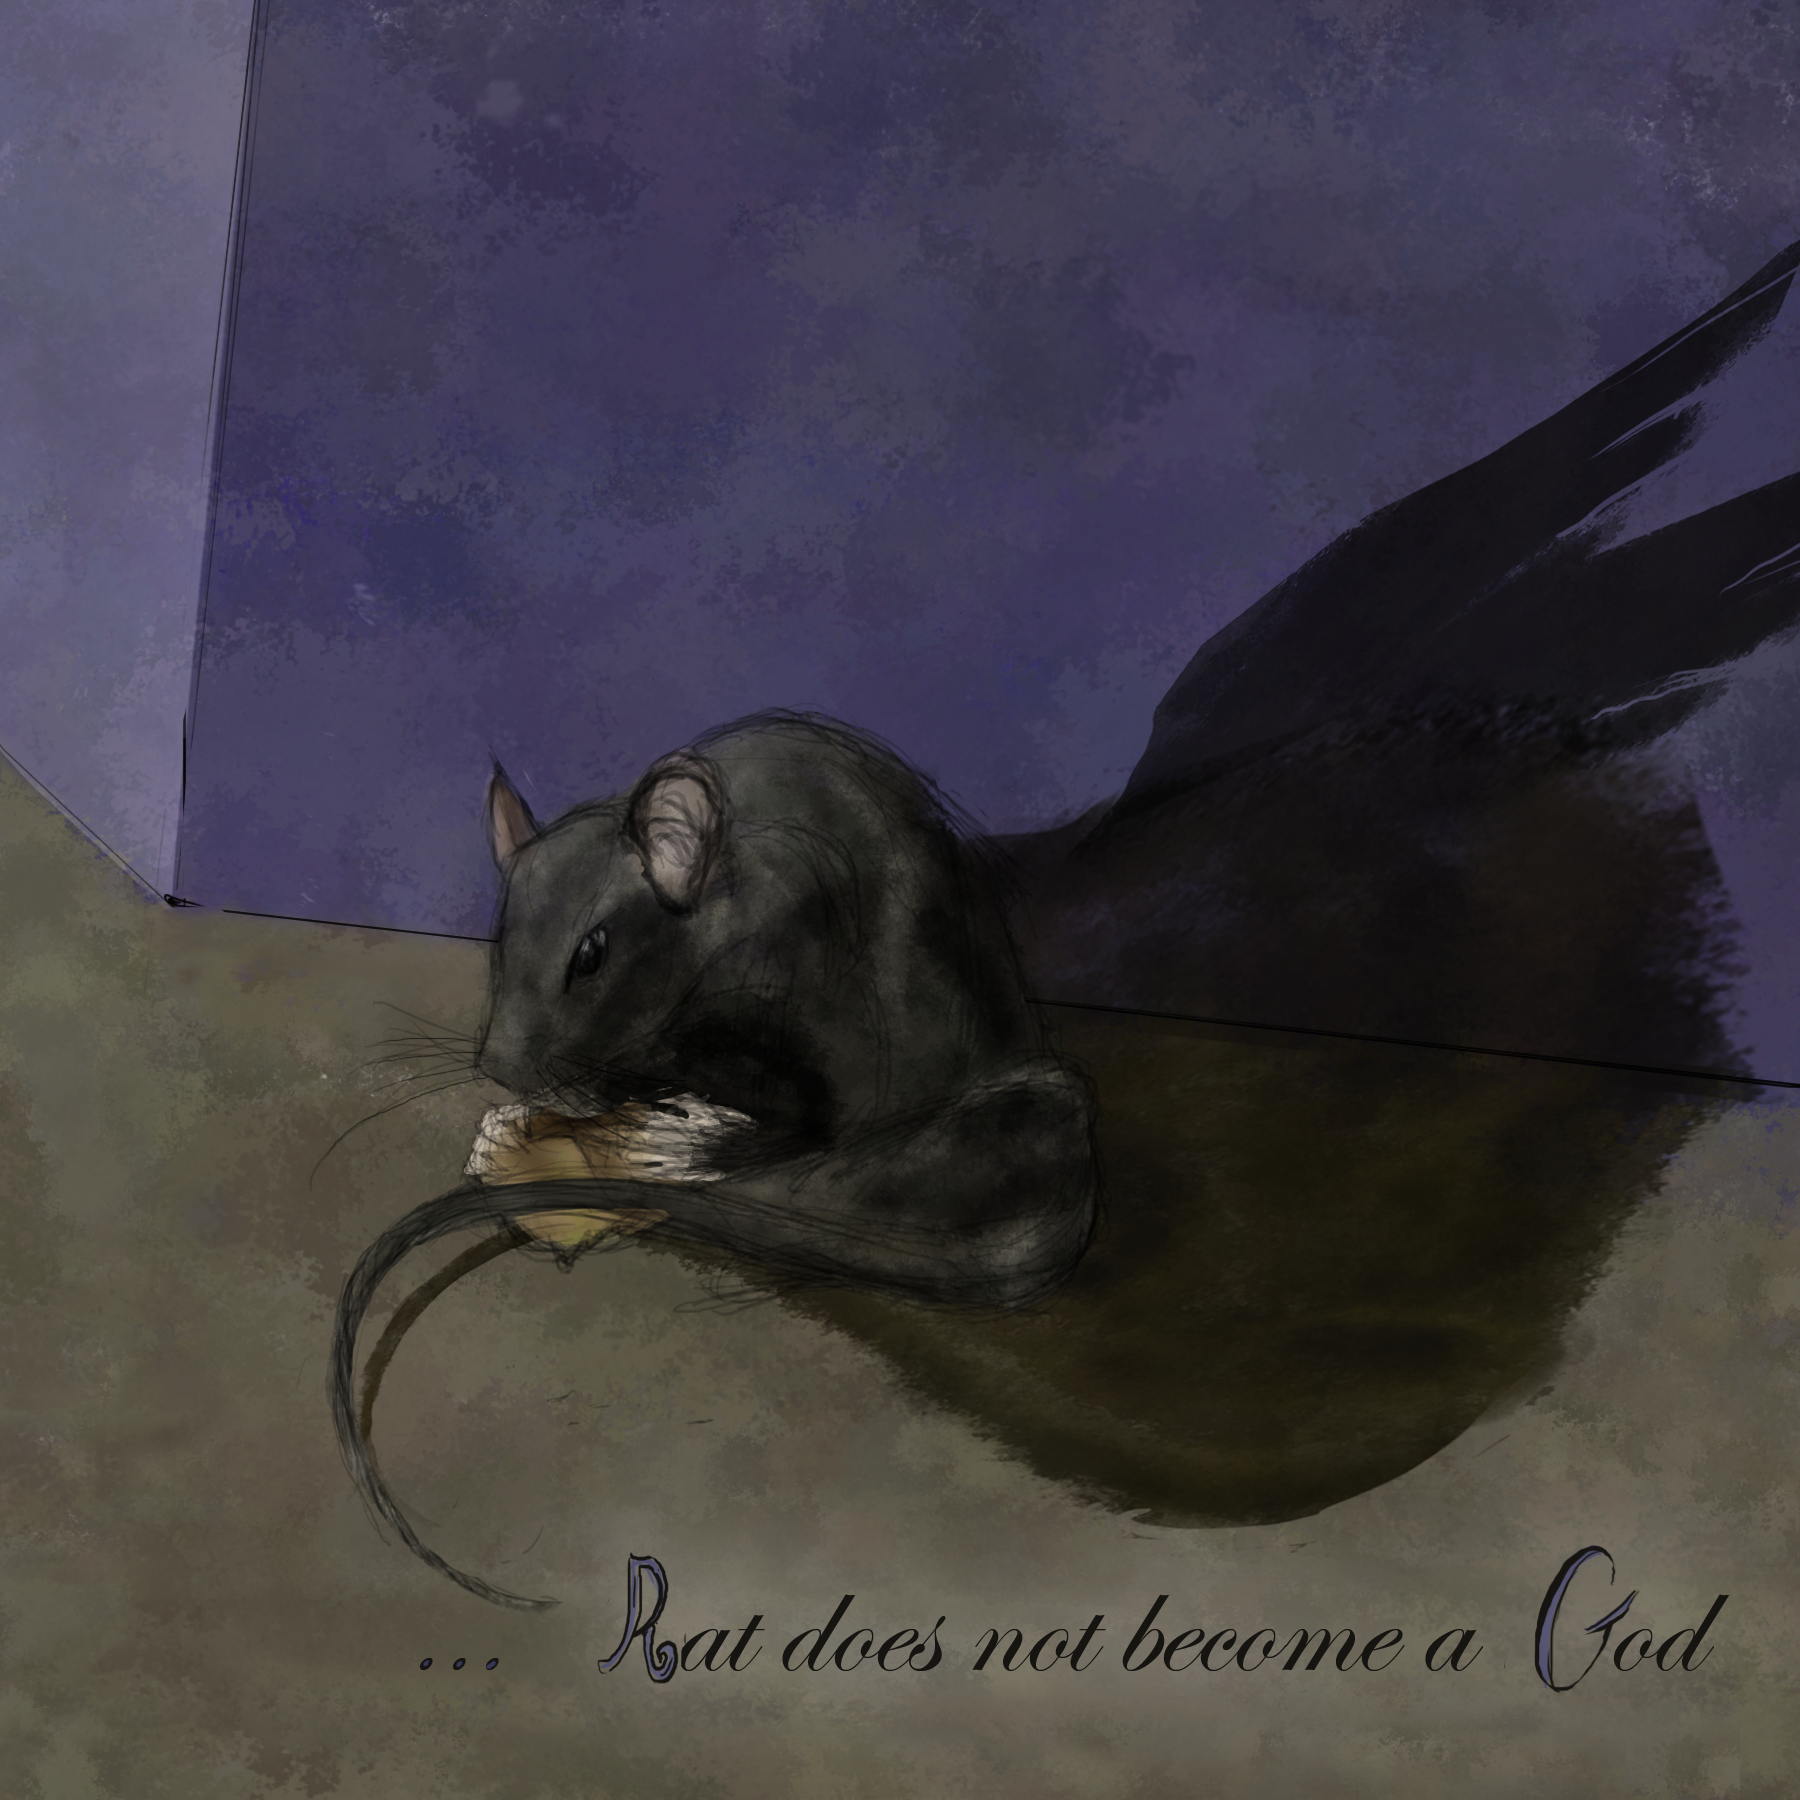 How Rat Does Not Become A God